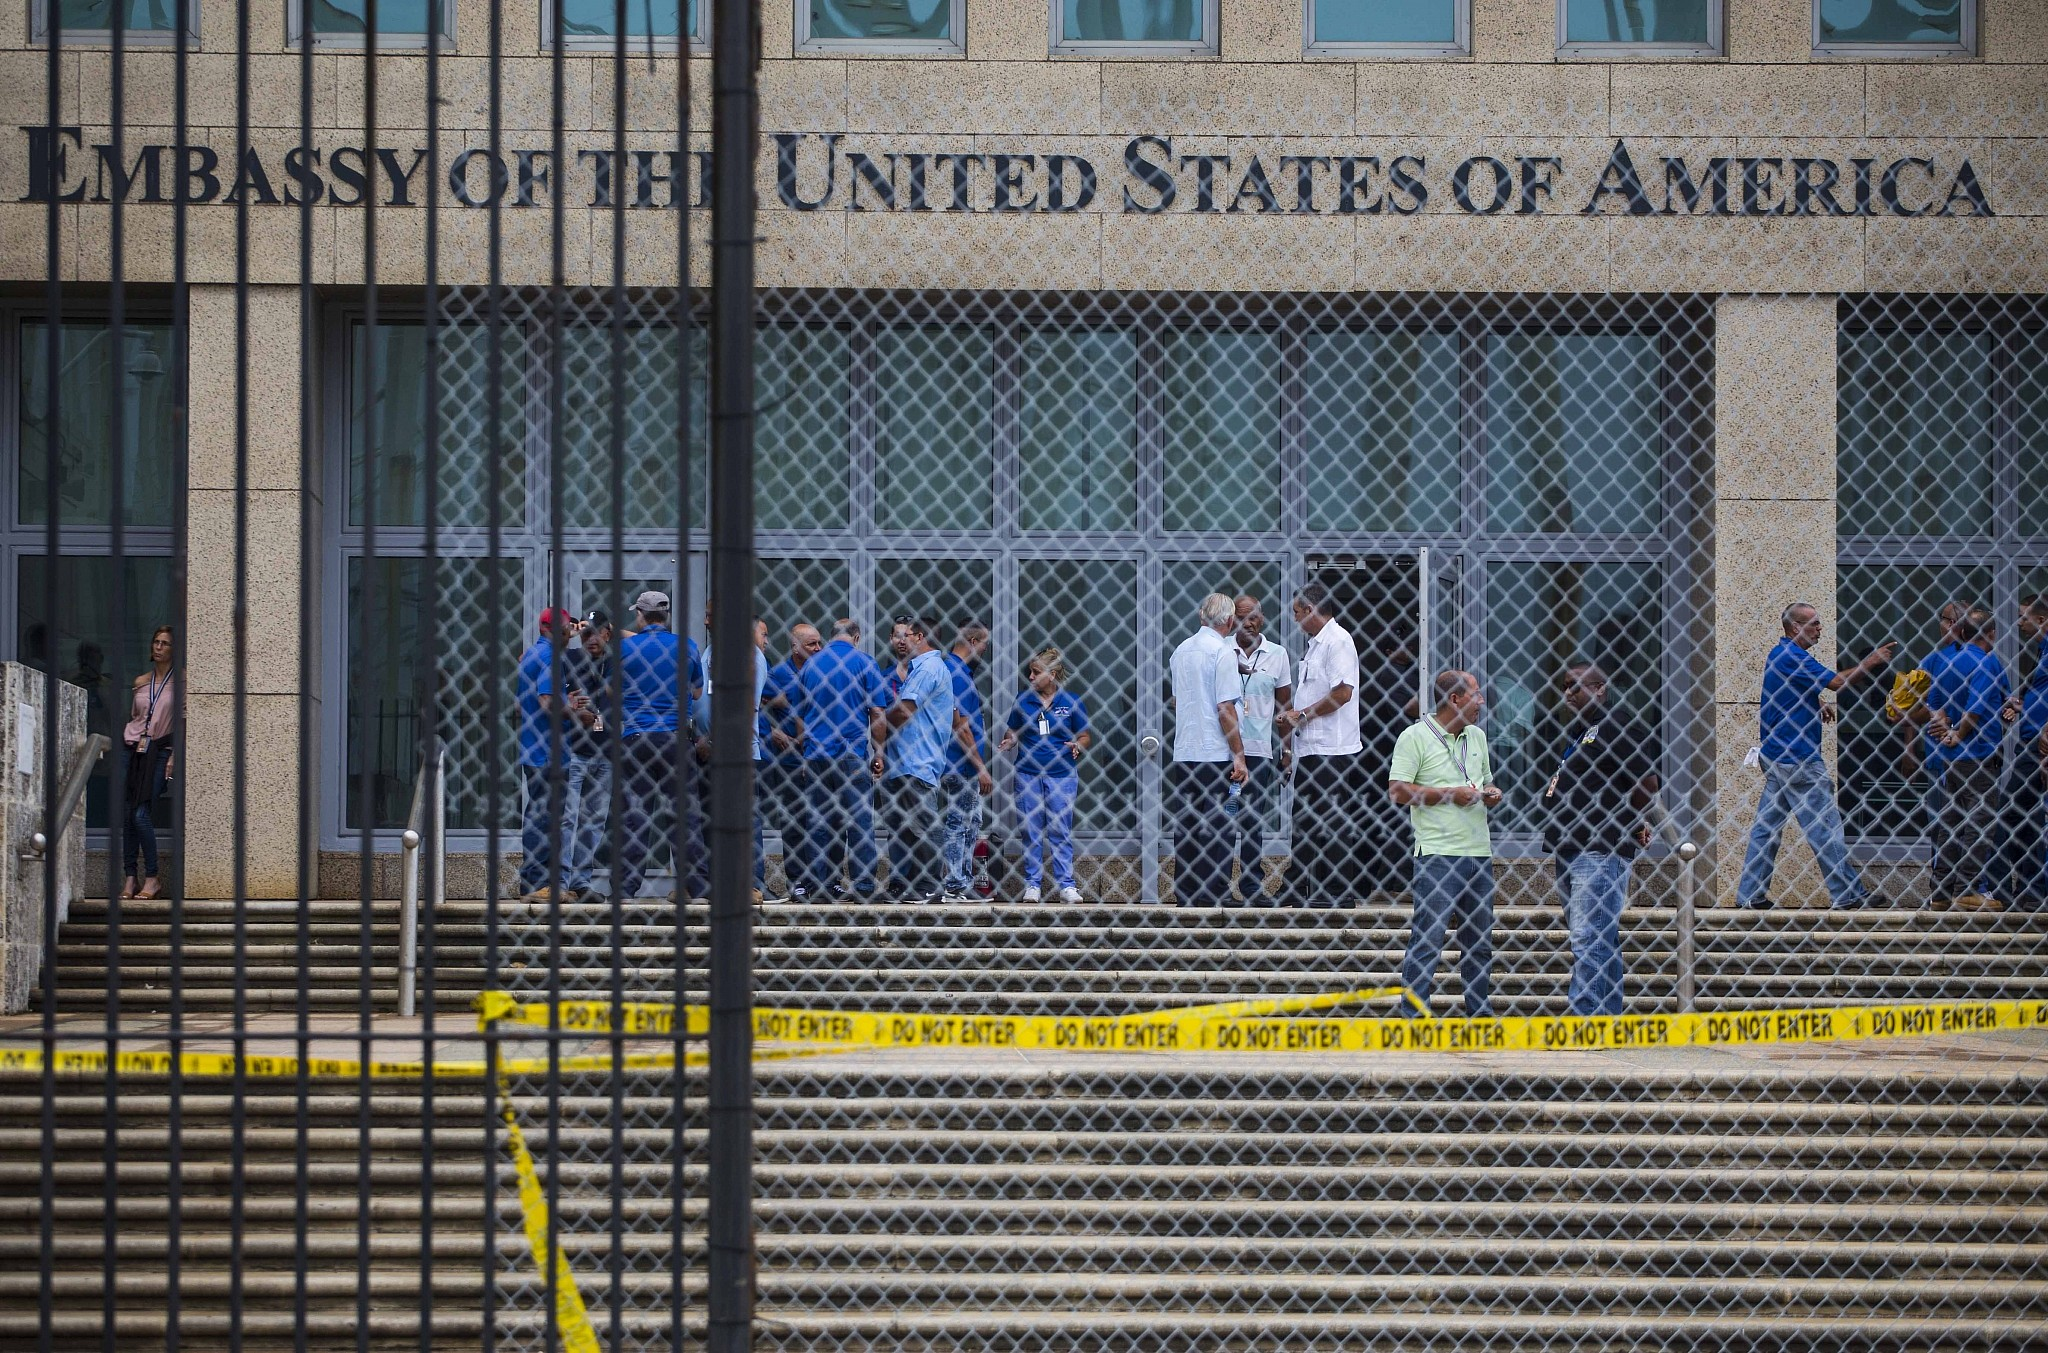 United States calls mysterious health ailments in Cuba 'attacks'